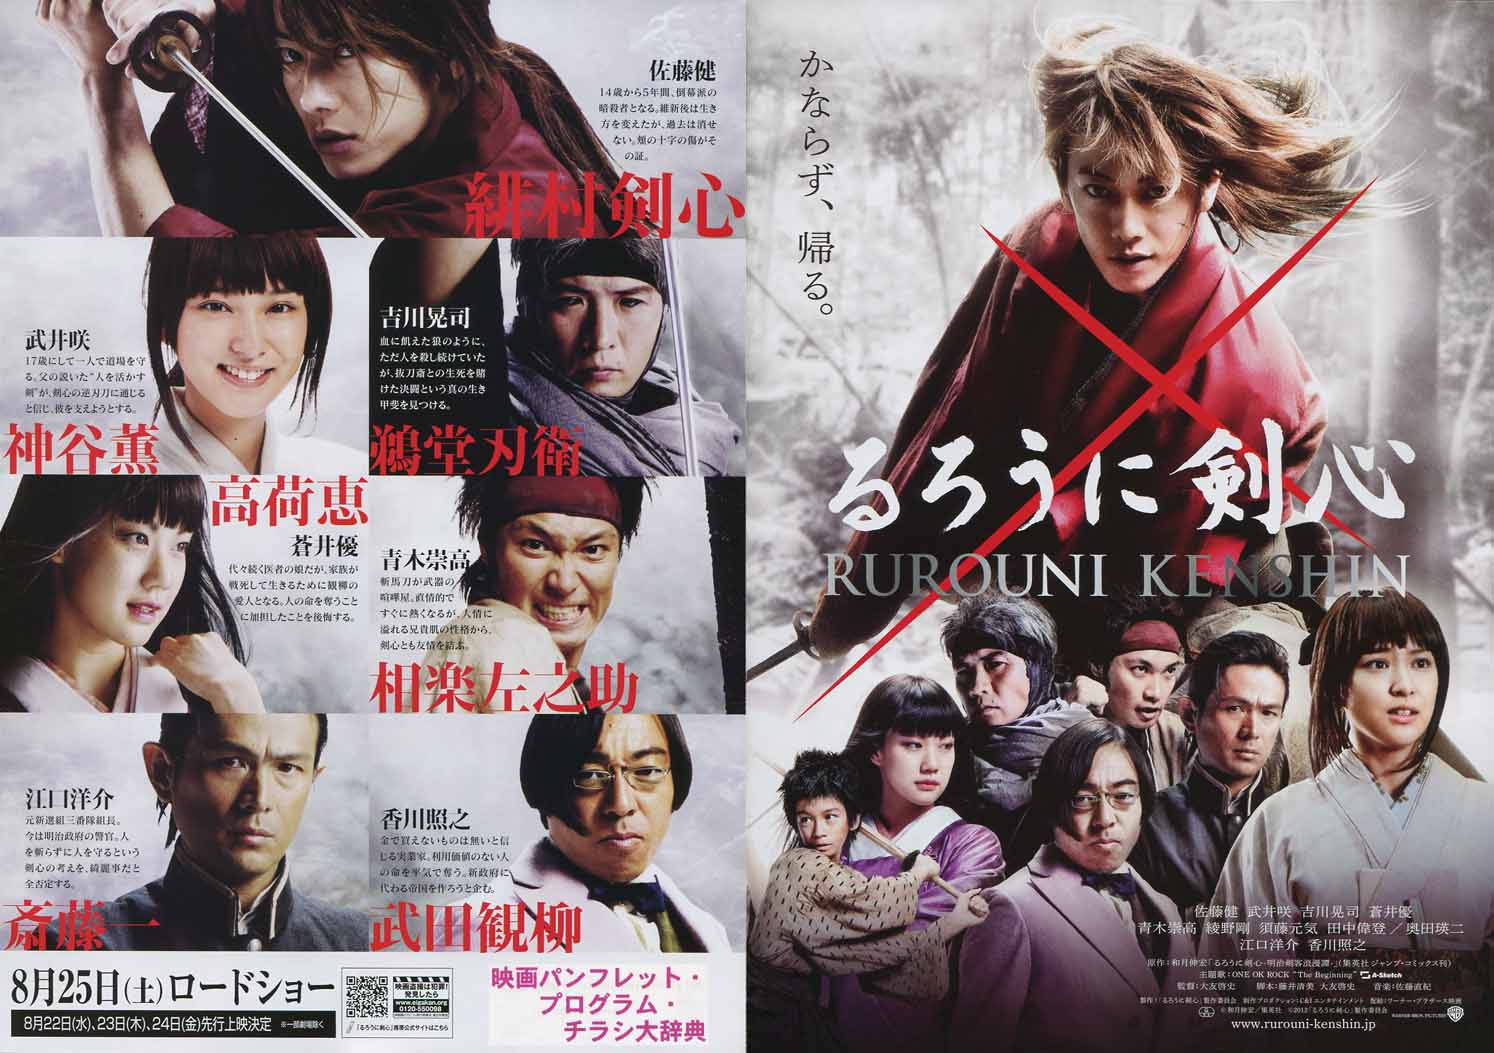 rurouni kenshin 1 full movie download